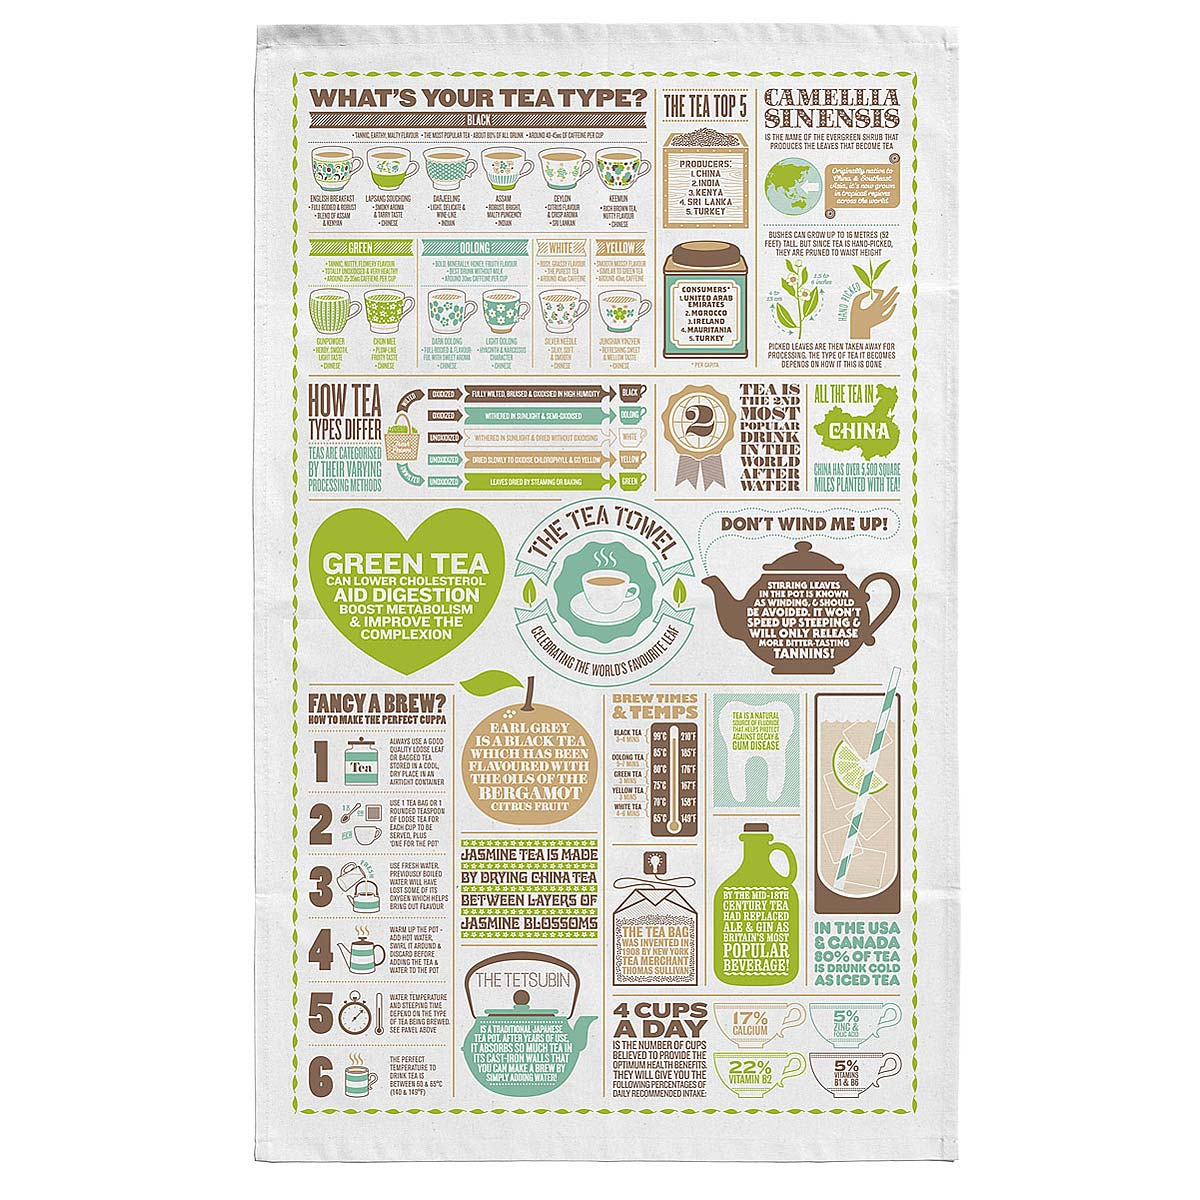 Mind Tea Towel Thumbnail Tea Towel Expert Uncommongoods What Is A Tea Towel Used What Is A Tea Towel Fabric photos What Is A Tea Towel